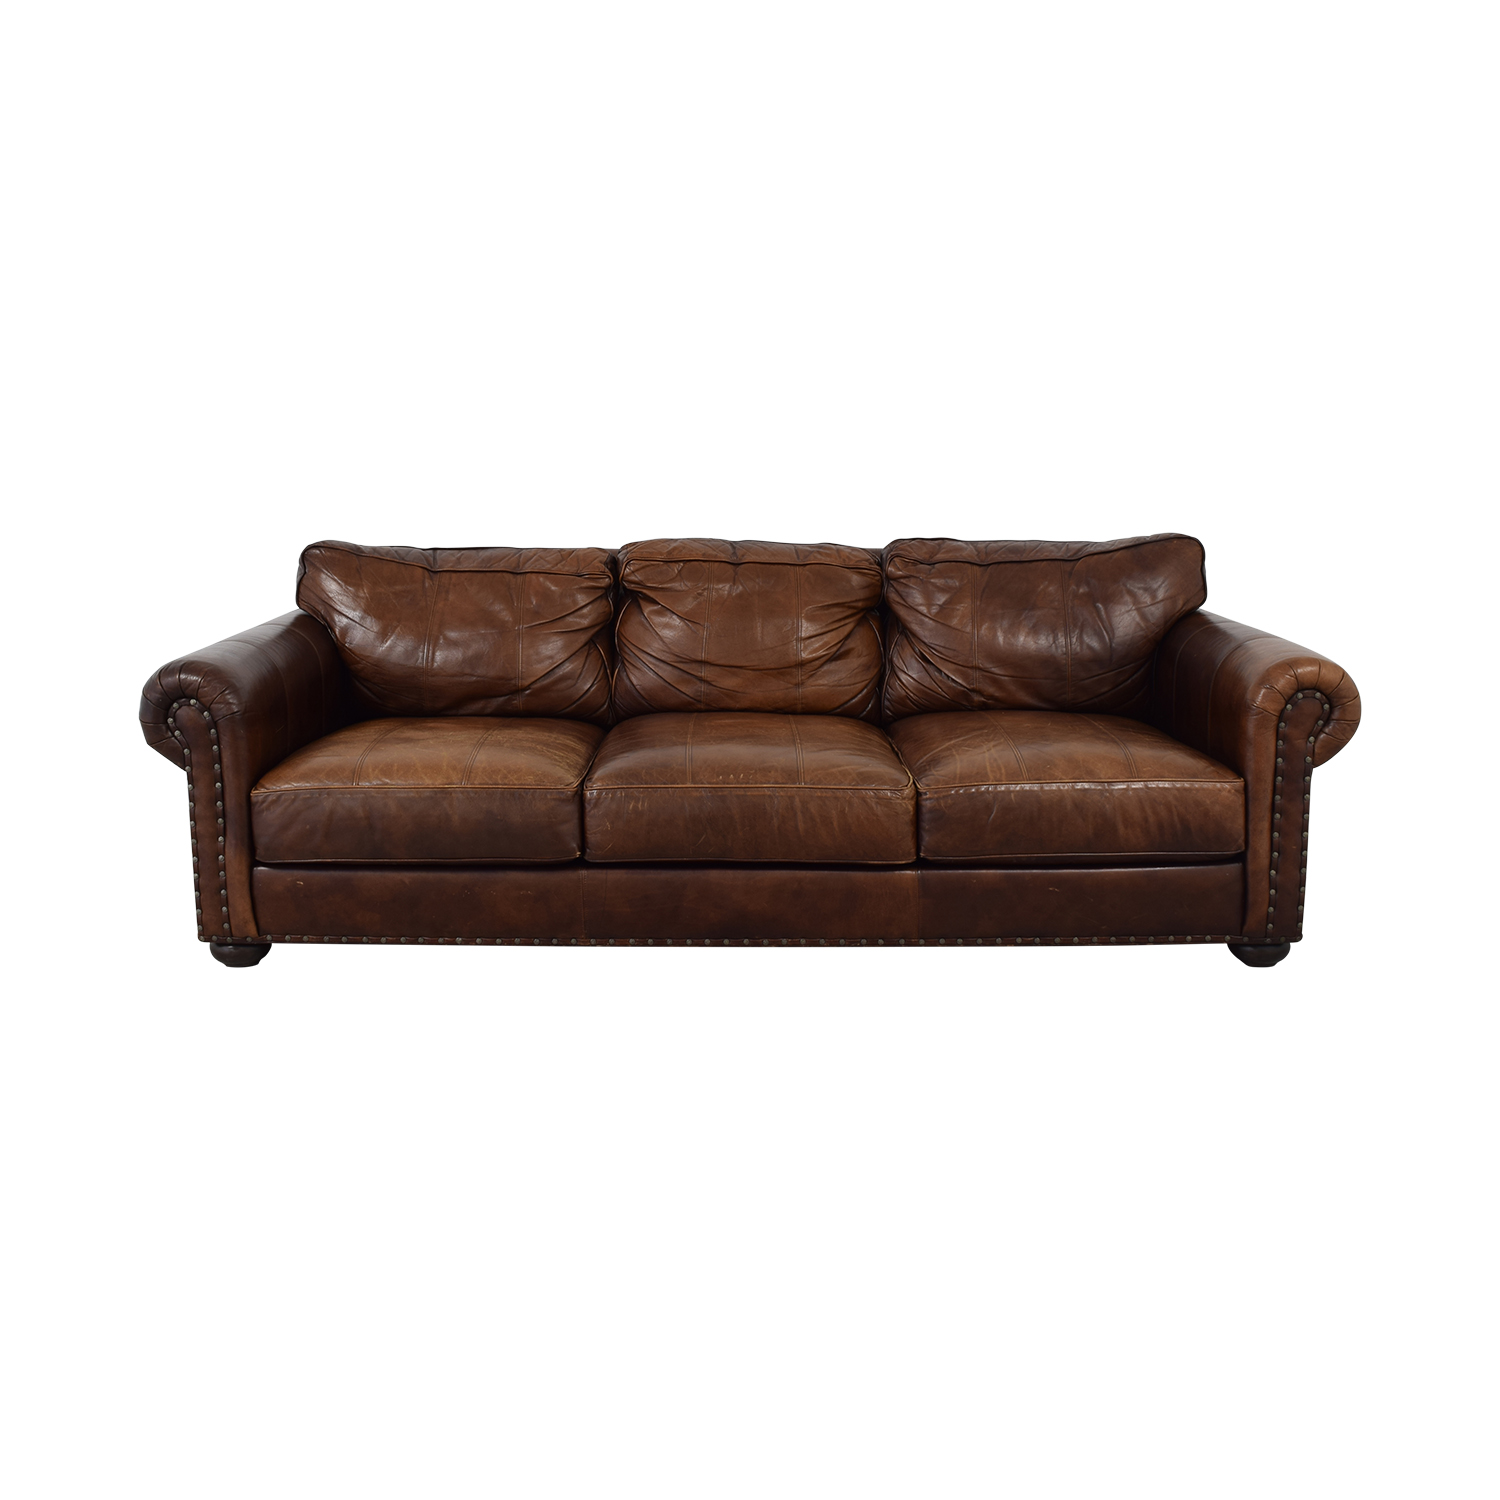 71% OFF - Ethan Allen Ethan Allen Three Cushion Roll Arm Leather ...